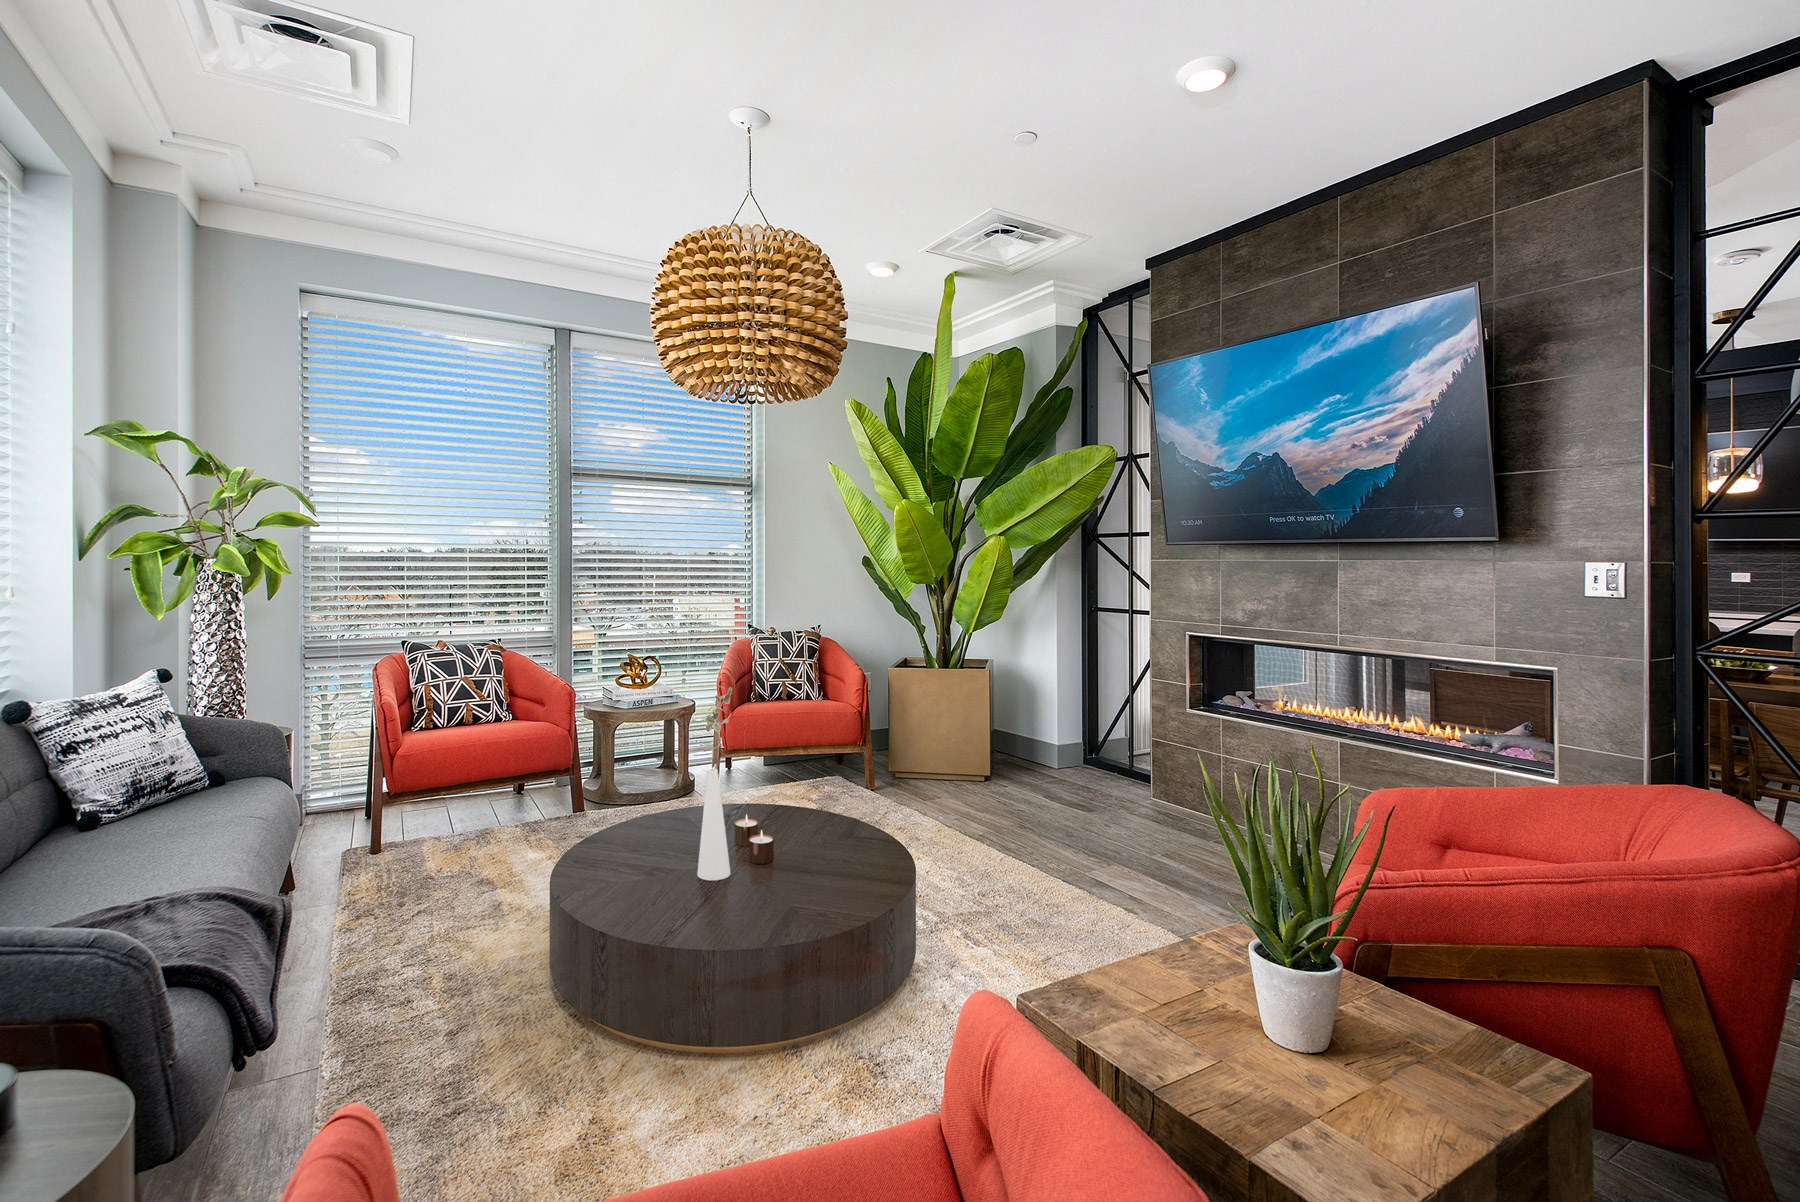 Great room with 4 red chairs, a grey couch and fireplace on the righthand side. TV above the fireplace for entertaining